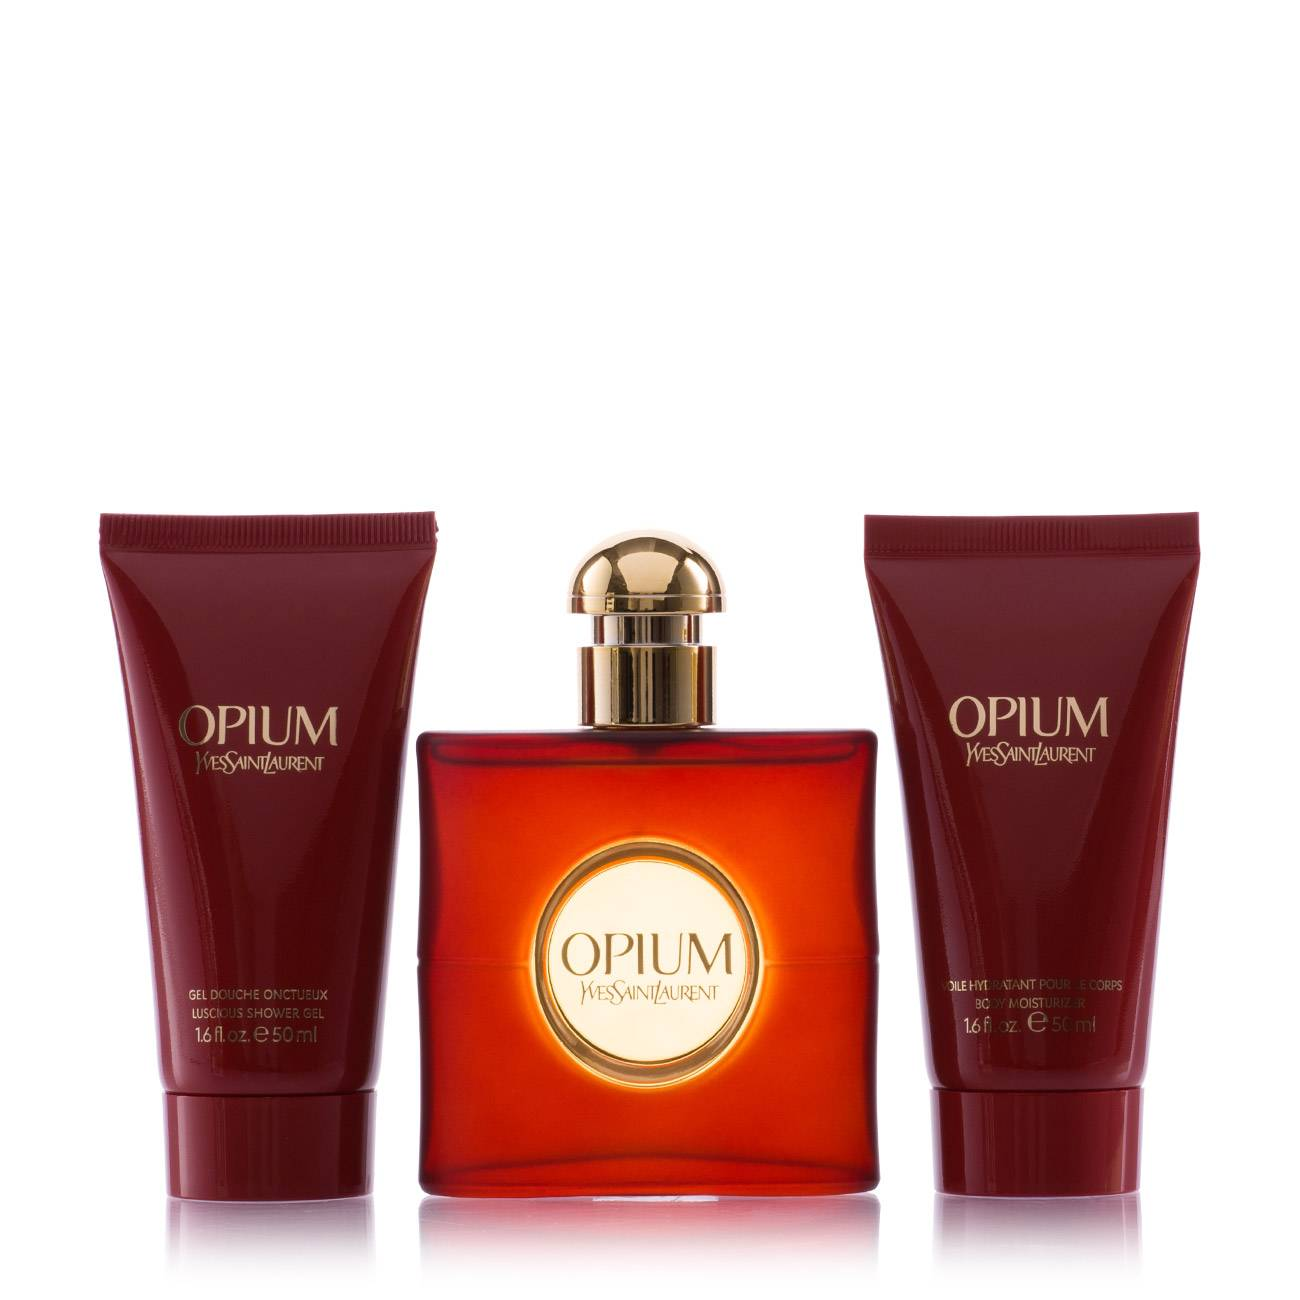 OPIUM SET 150ml imagine produs